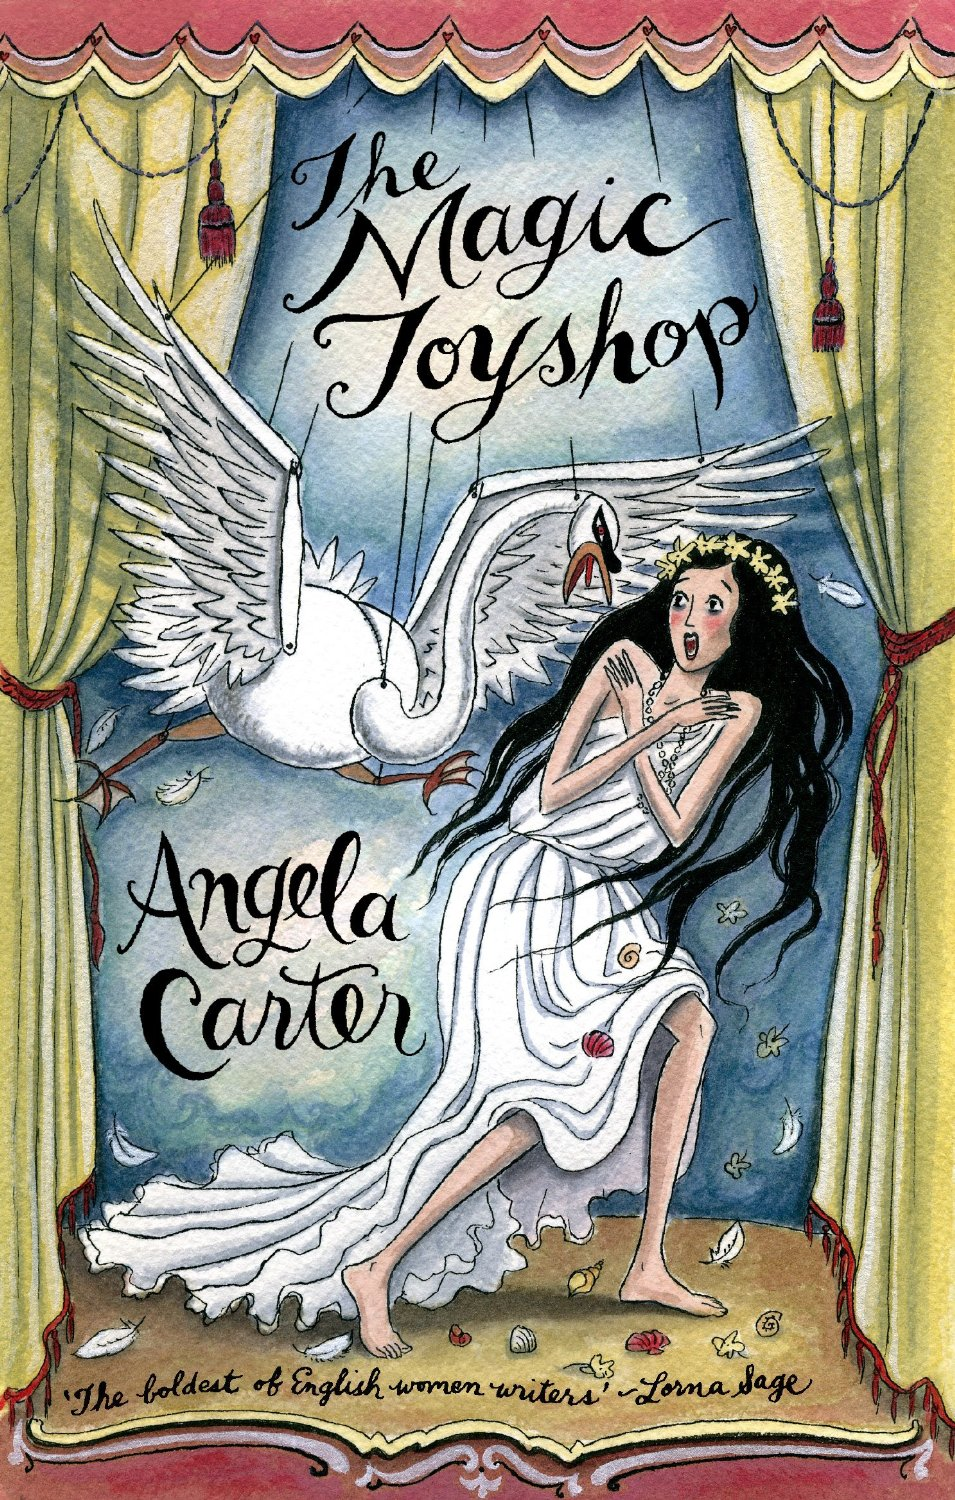 repression of women and the feminist perspective in the bloody chamber a novel by angela carter